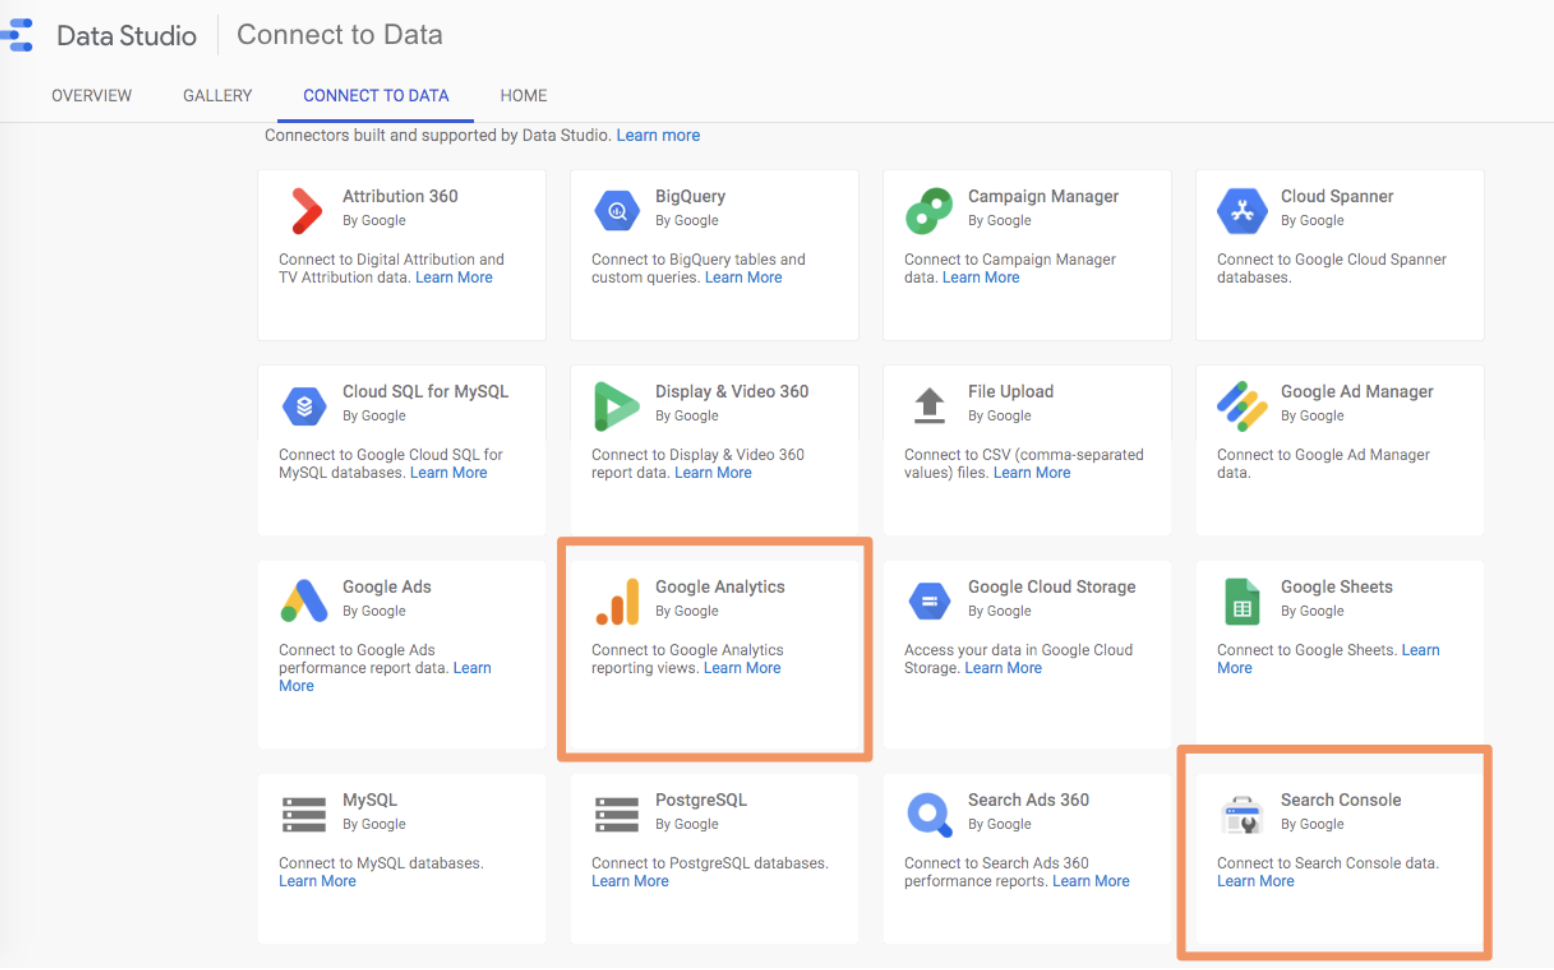 The Ultimate Guide to Google Data Studio in 2019